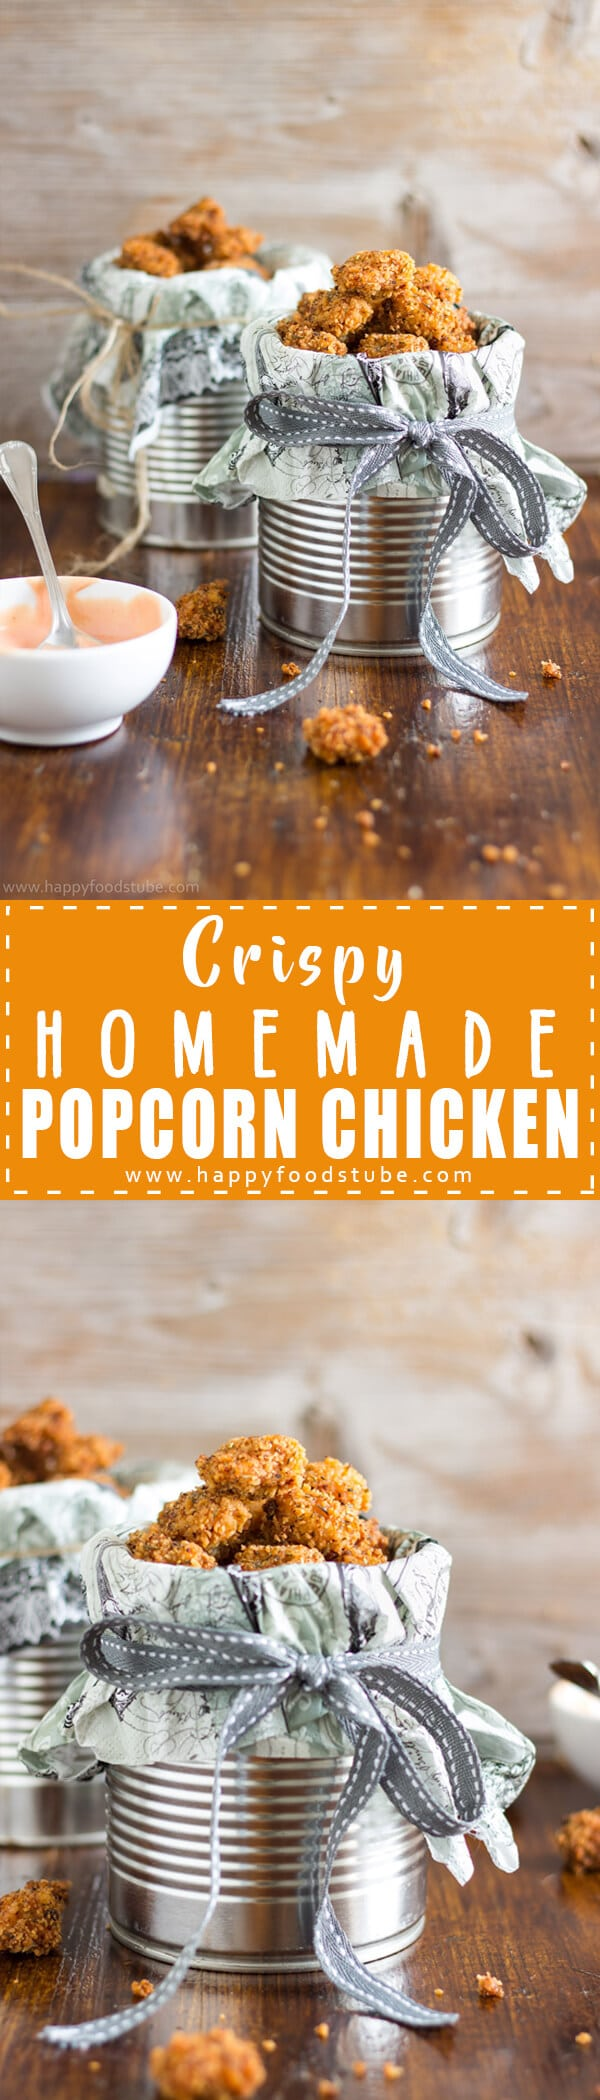 Crispy Homemade Popcorn Chicken - Crispy homemade popcorn chicken. A very easy recipe for this popular and delicious snack. Chicken pieces coated in breadcrumbs & served with yummy dip. | happyfoodstube.com